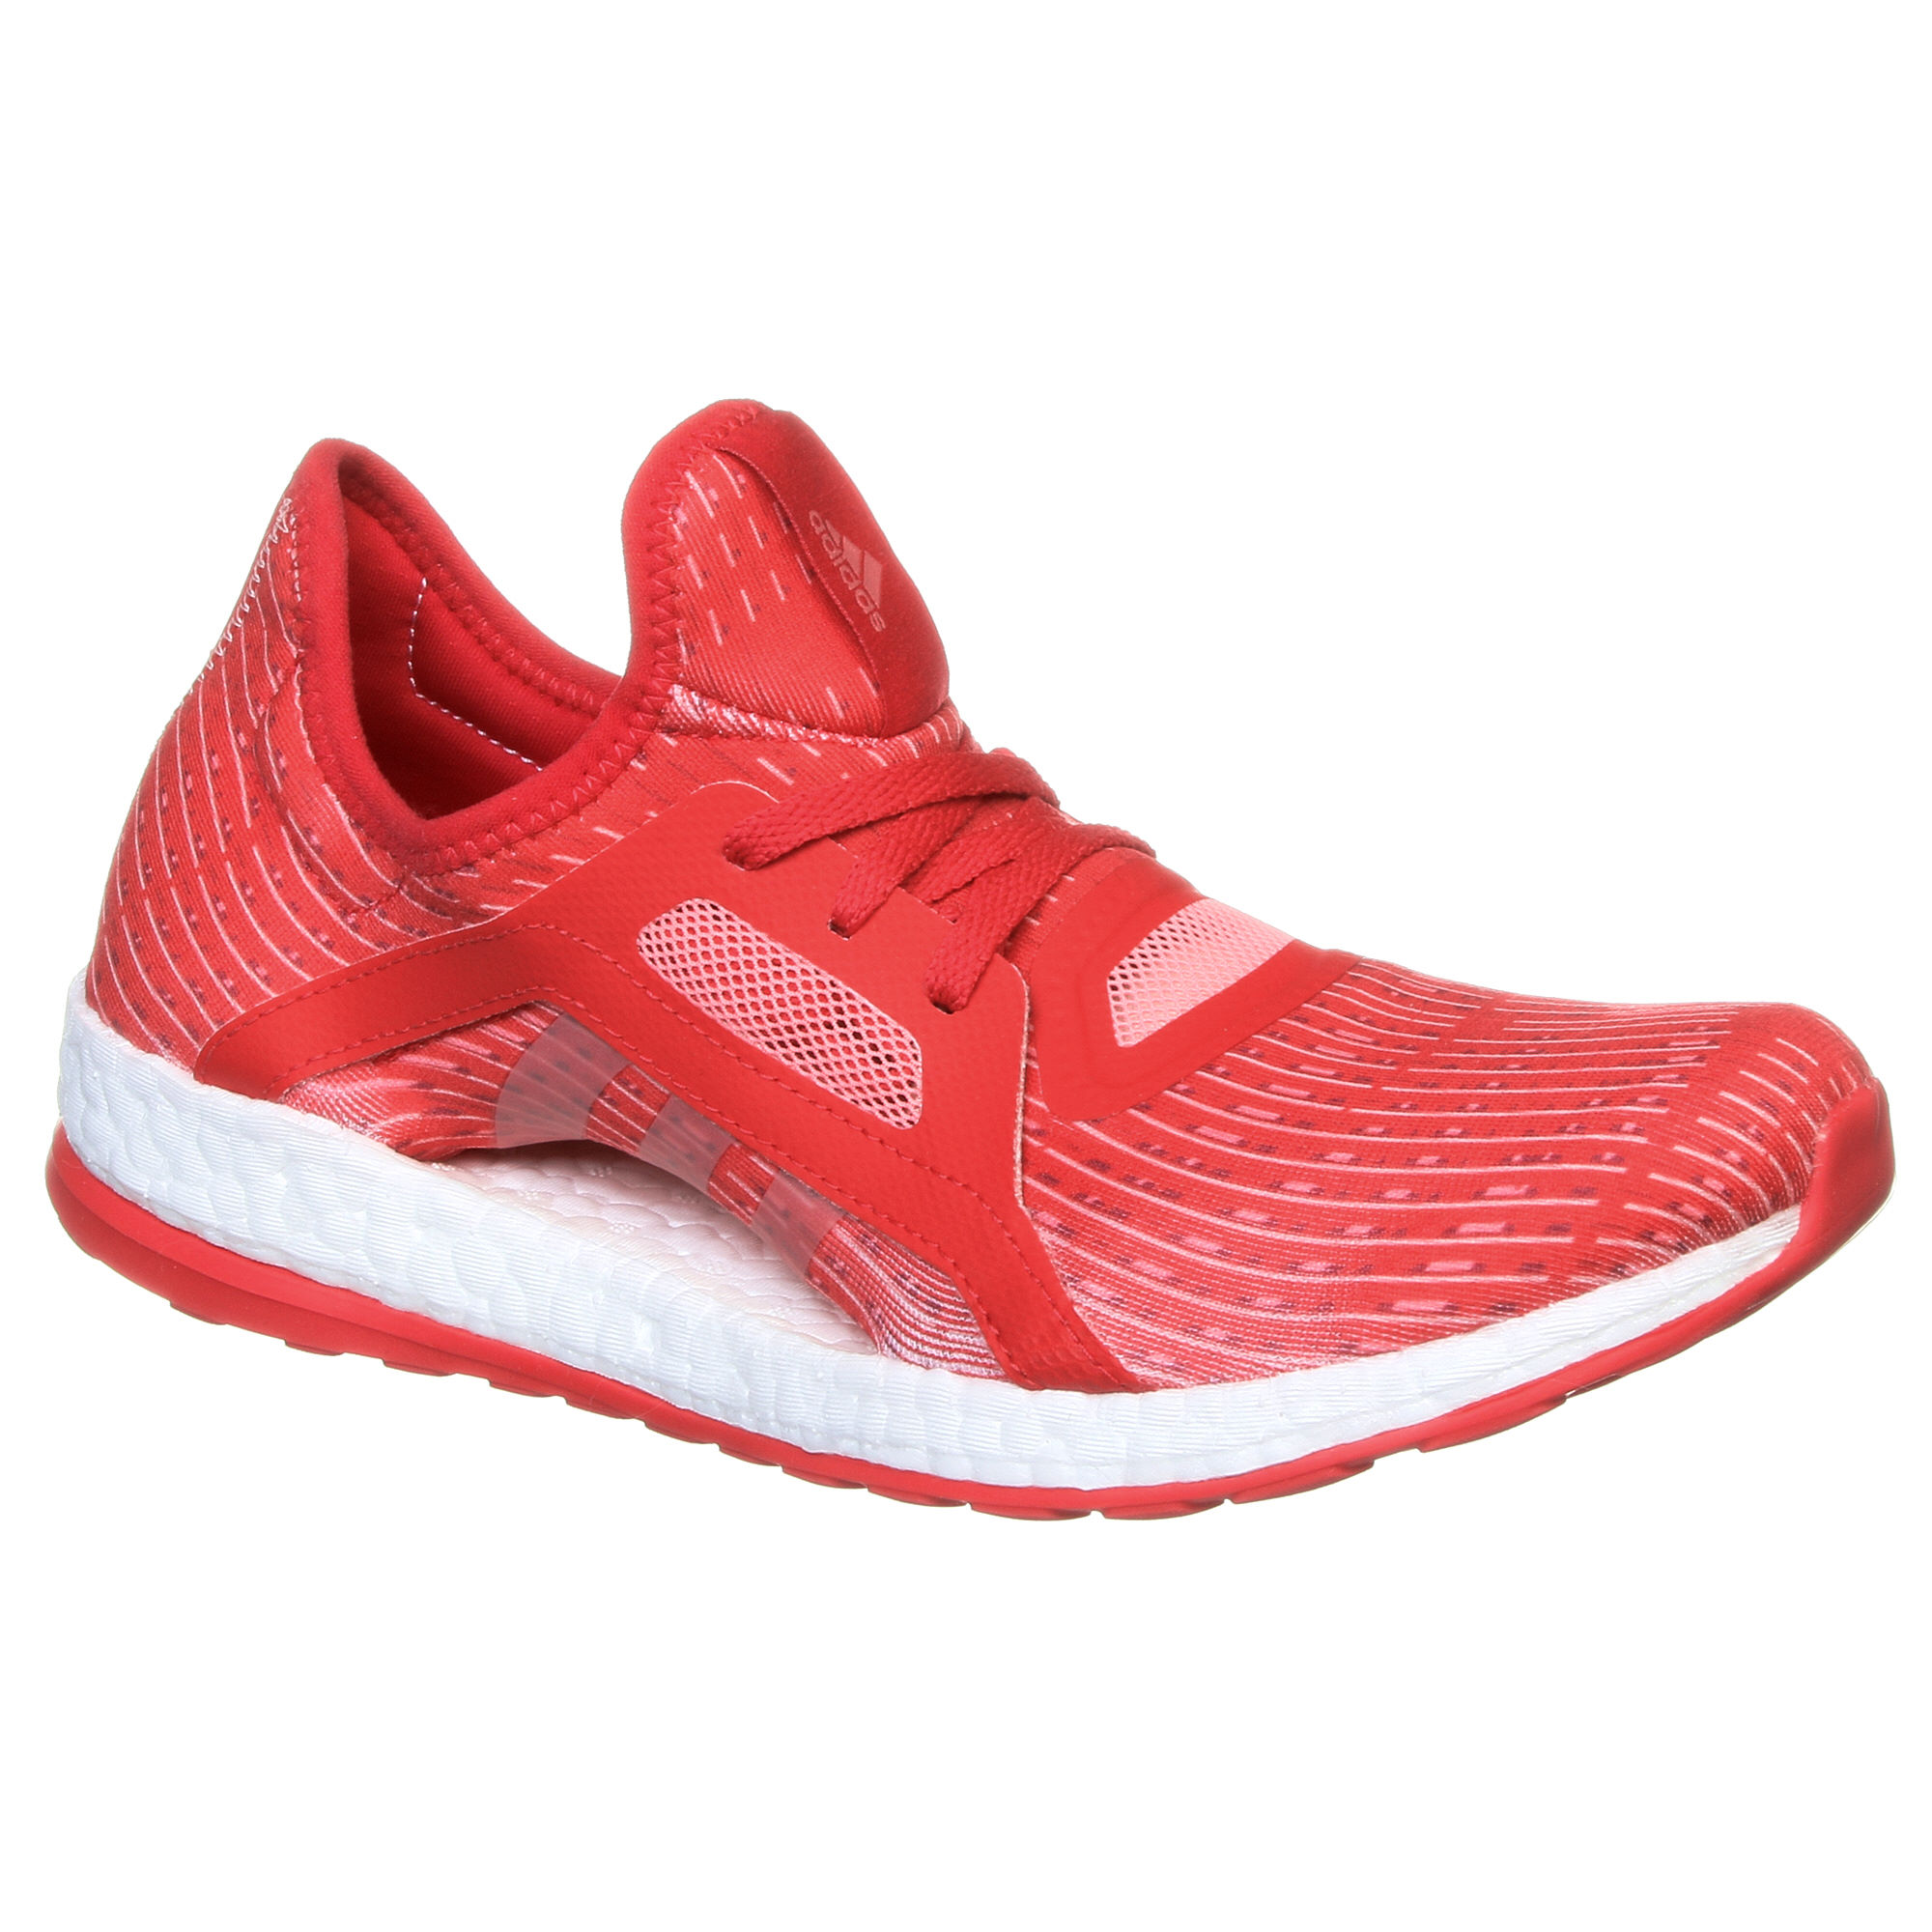 Adidas Women\u0027s Pure Boost X Shoes (Red, AW16)